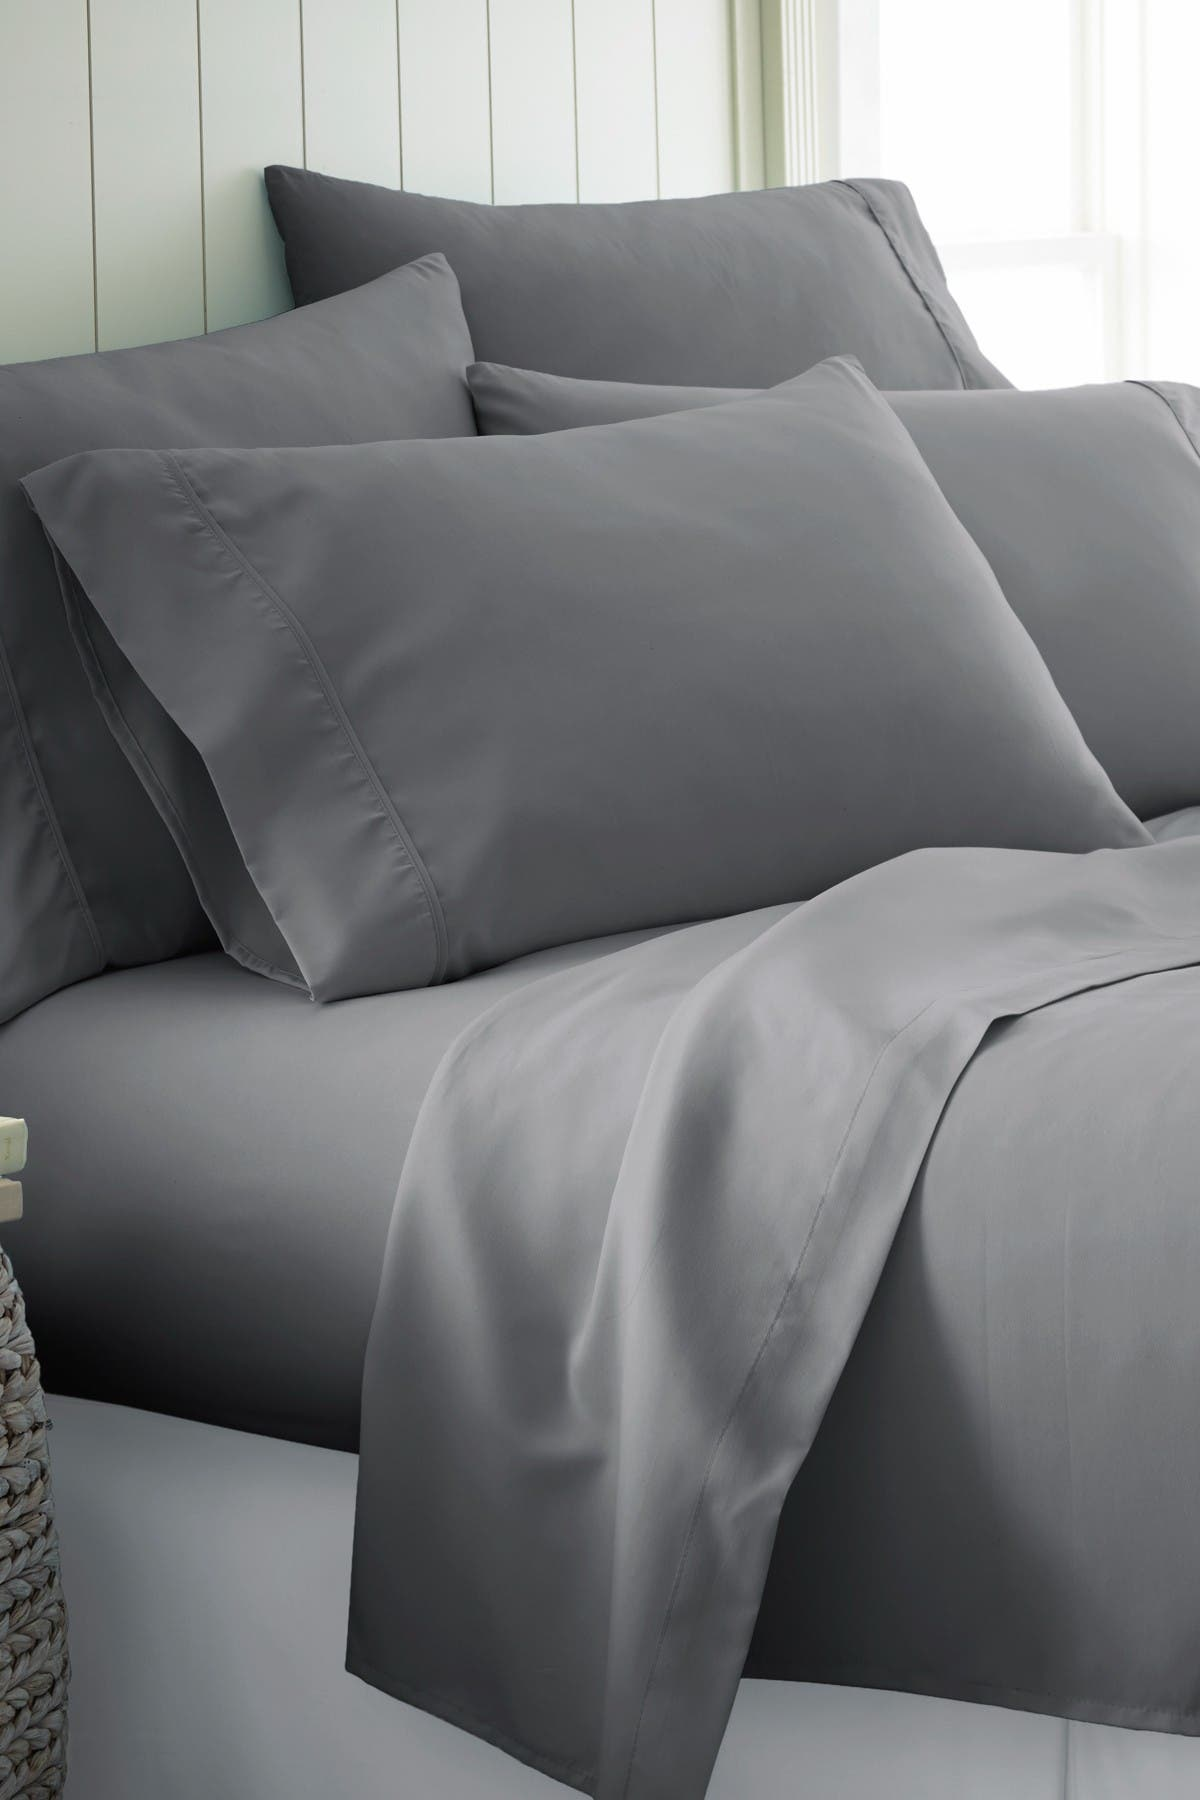 Image of IENJOY HOME Full Hotel Collection Premium Ultra Soft 6-Piece Bed Sheet Set - Gray